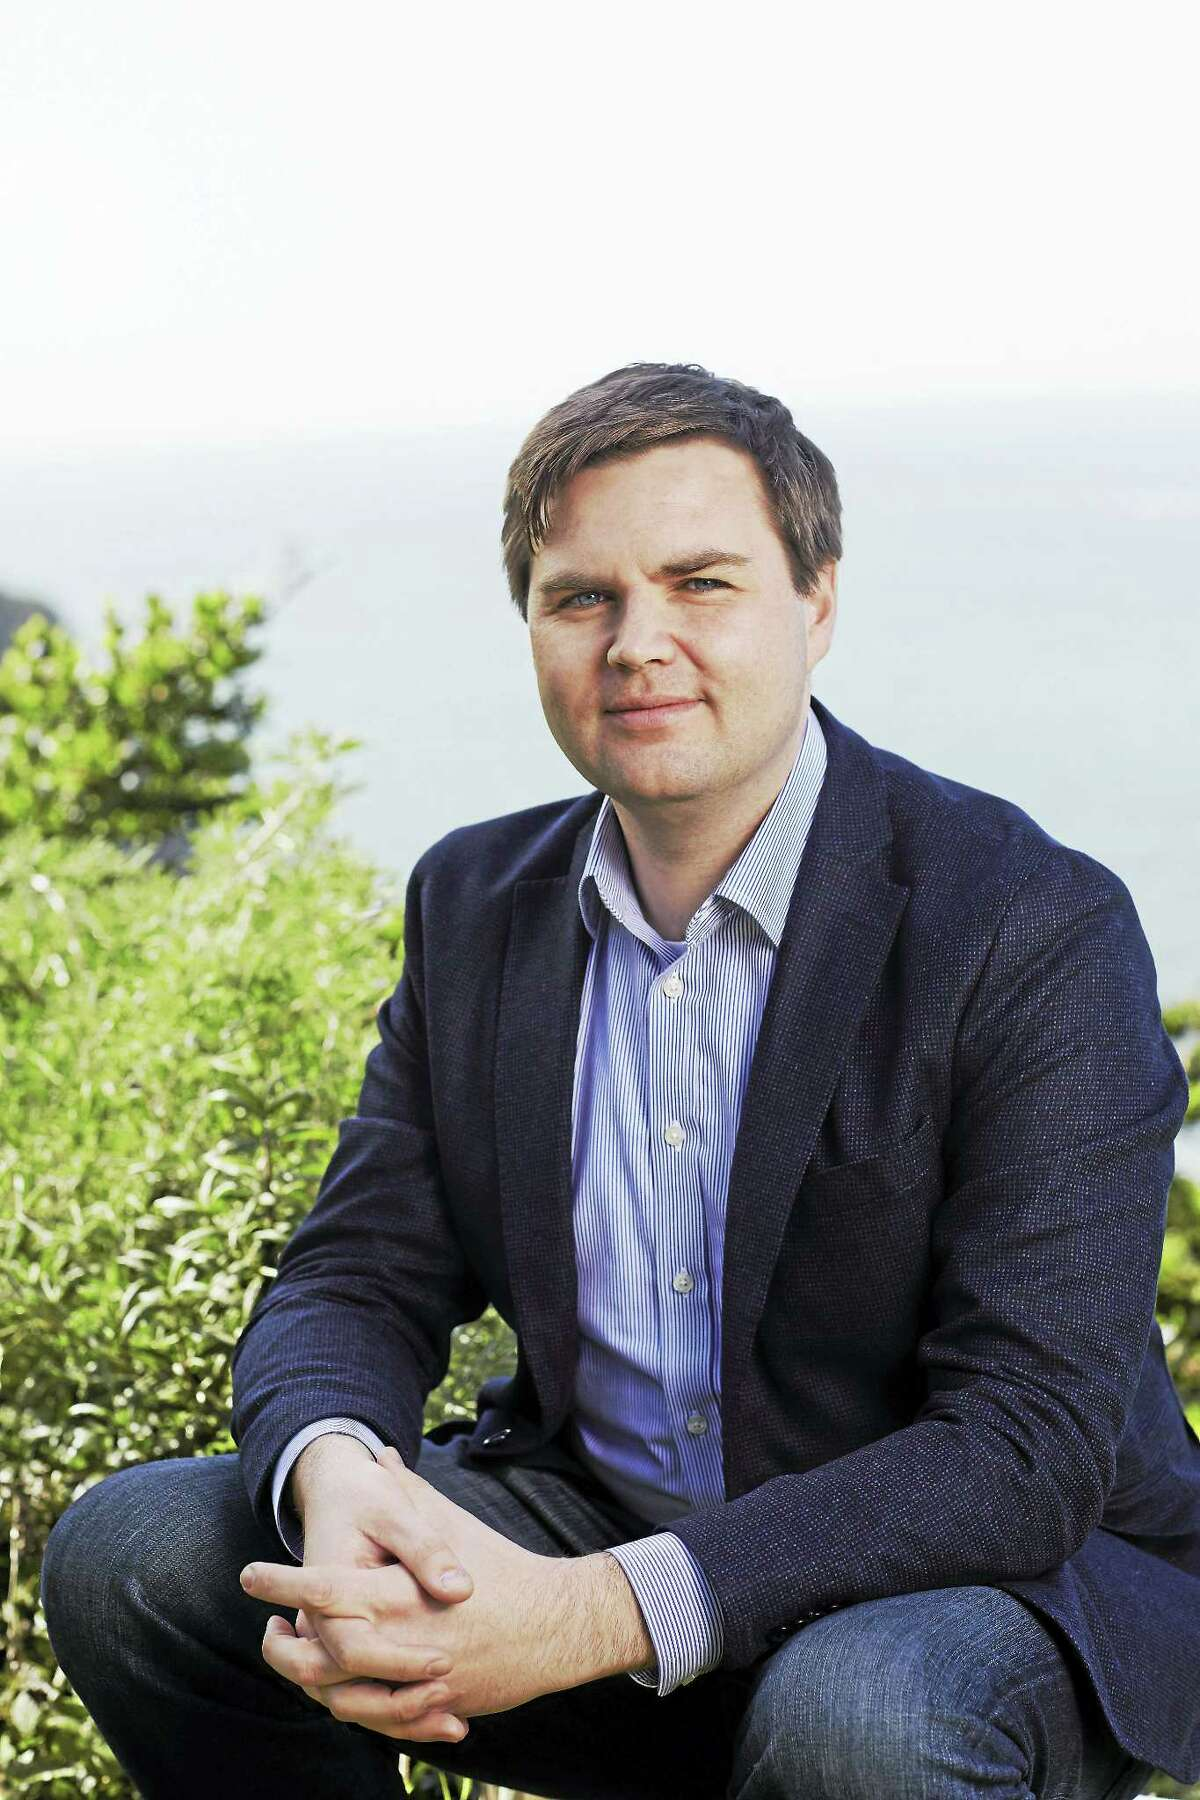 Author J.D. Vance J.D. Vance grew up in Middletown, Ohio, with his mother who suffered from a drug addiction. The film depicts Vance's maternal grandmother as a central figure in his life who helped put him on a path to college. He graduated from the Yale Law School in 2013 after serving in the Marines. Three years later in 2016, his book